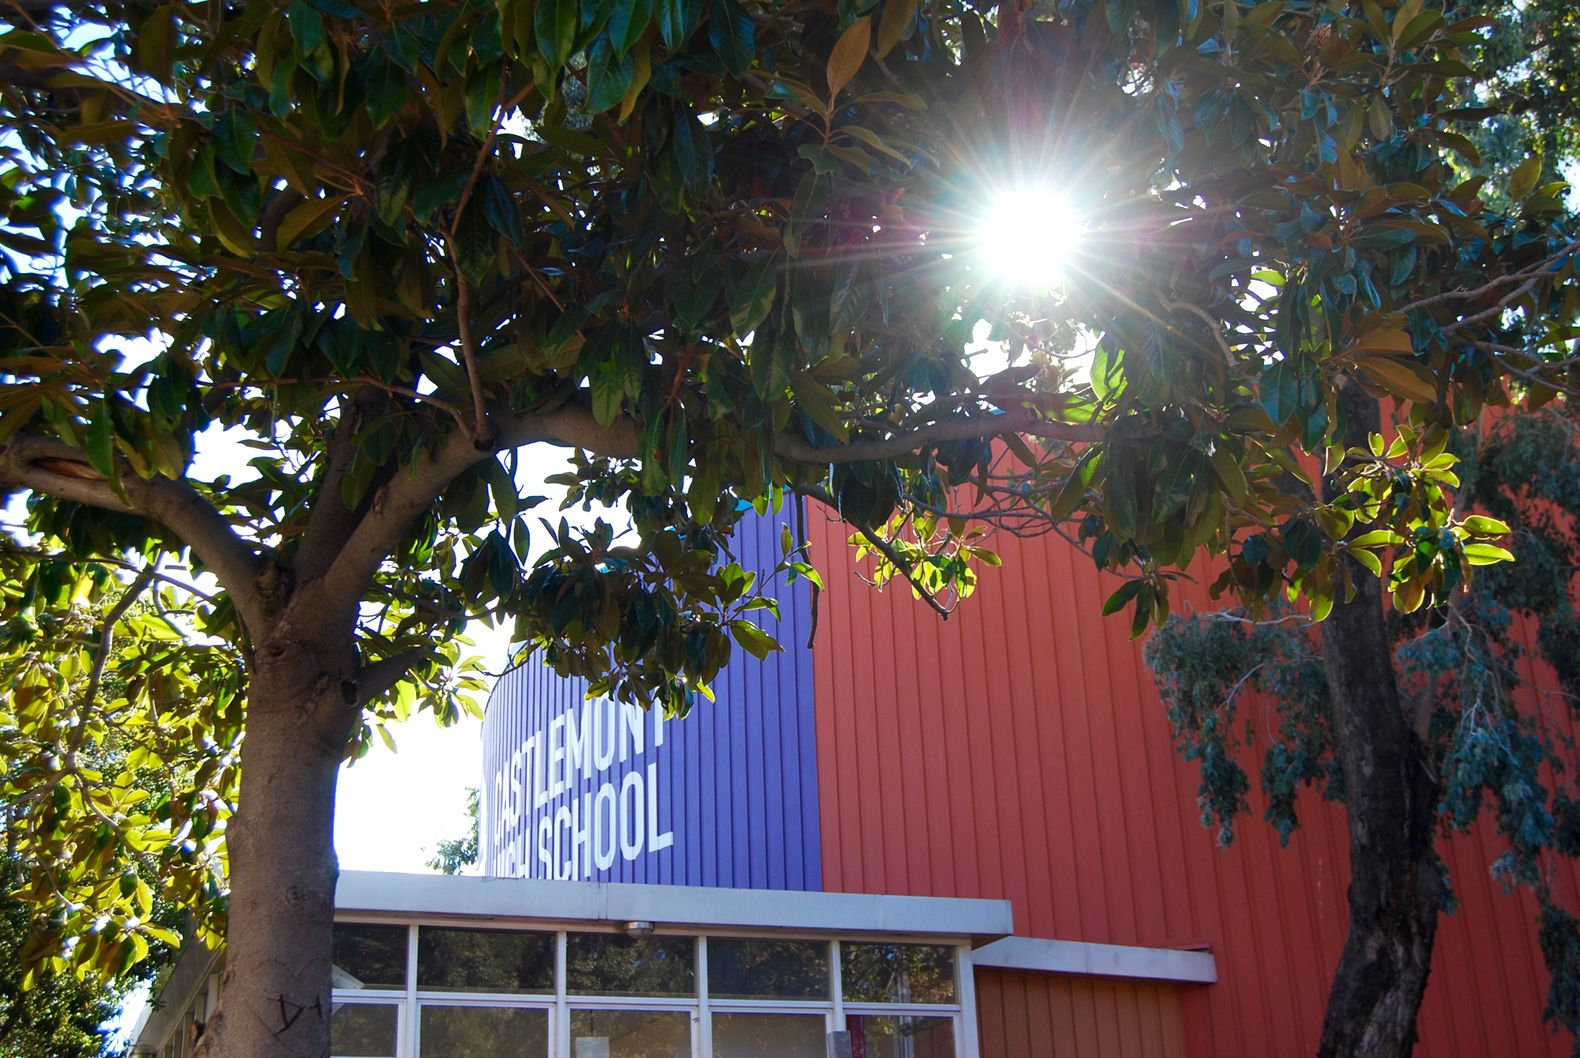 Located in East Oakland, Castlemont High School uses a network of adults and community supports to help students succeed.